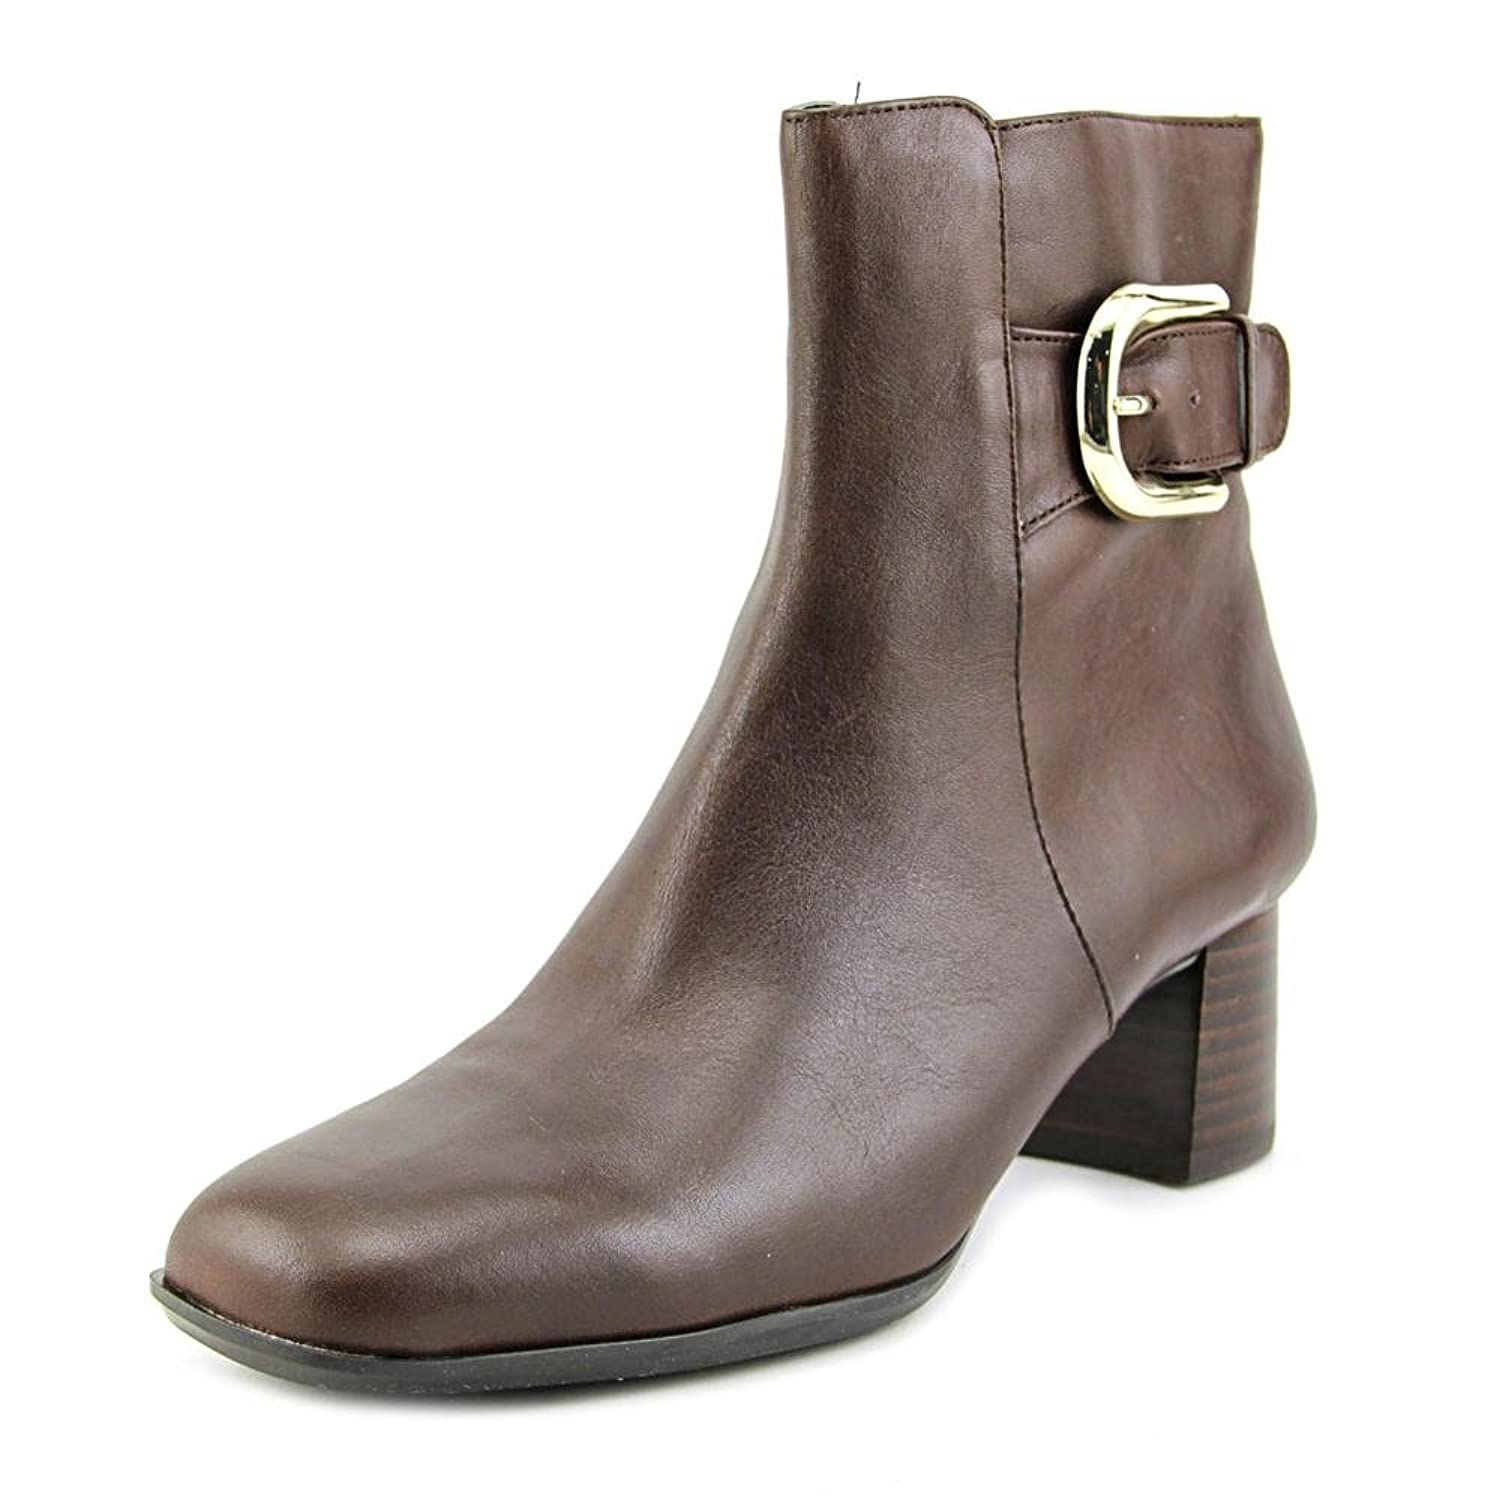 4ffe3a4f3748 high-quality Nine West Poppyo Women Square Toe Leather Brown Ankle Boot